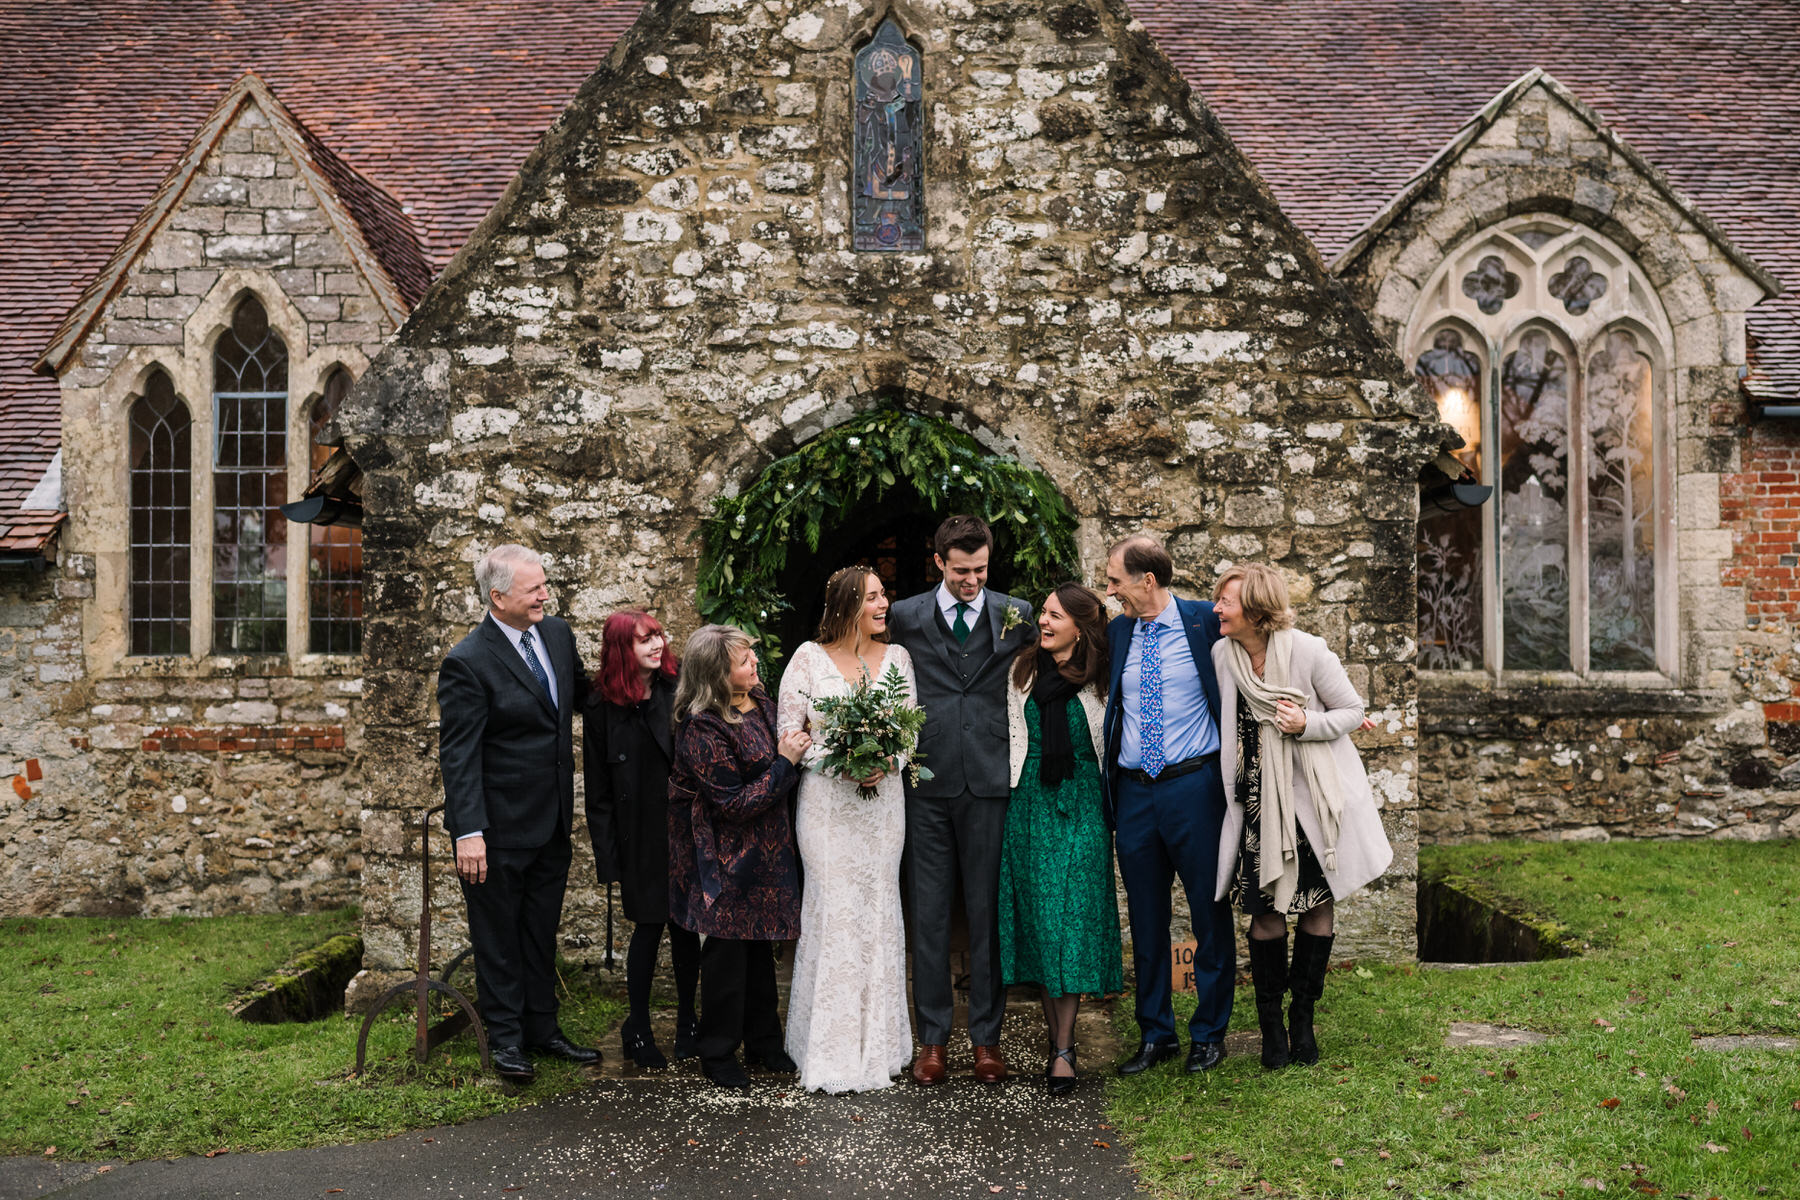 Group photos at new forest church wedding